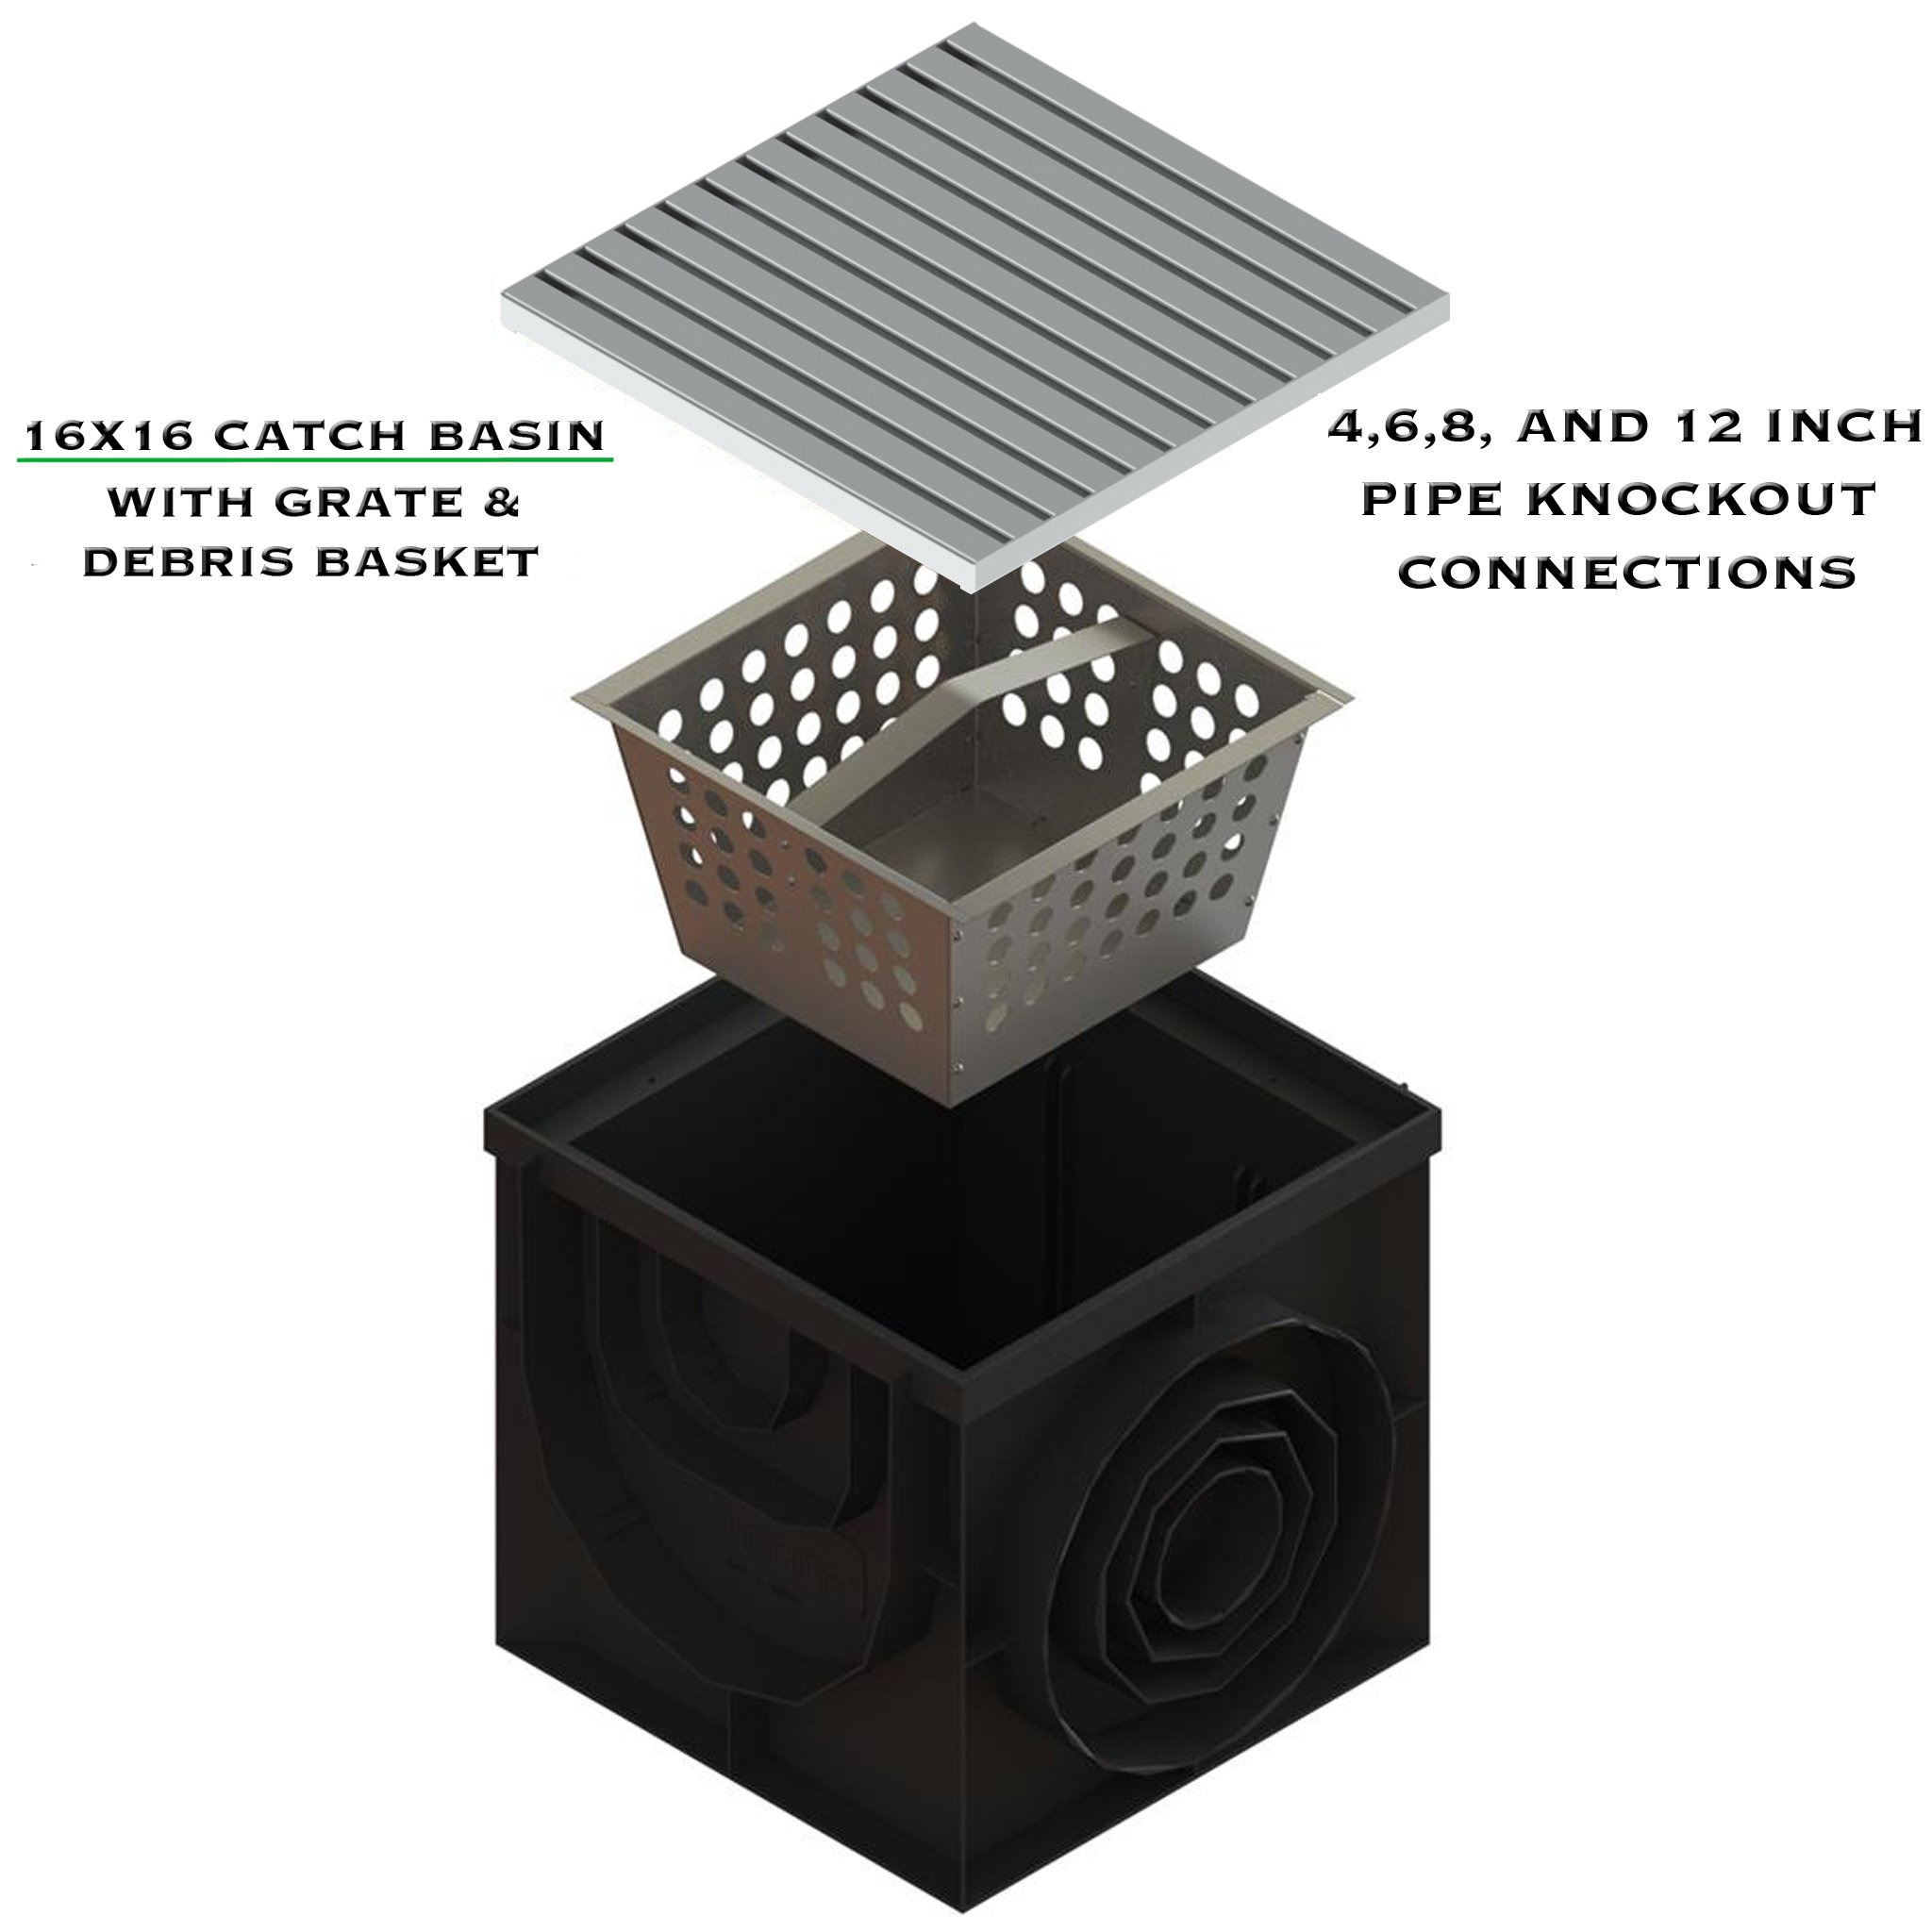 Standartpark - 16x16 Inch Catch Basin. PPE Plastic with 100% Stainless Steel - ADA/Heel Proof Grate and Sediment Basket Included. by Standartpark (Image #5)